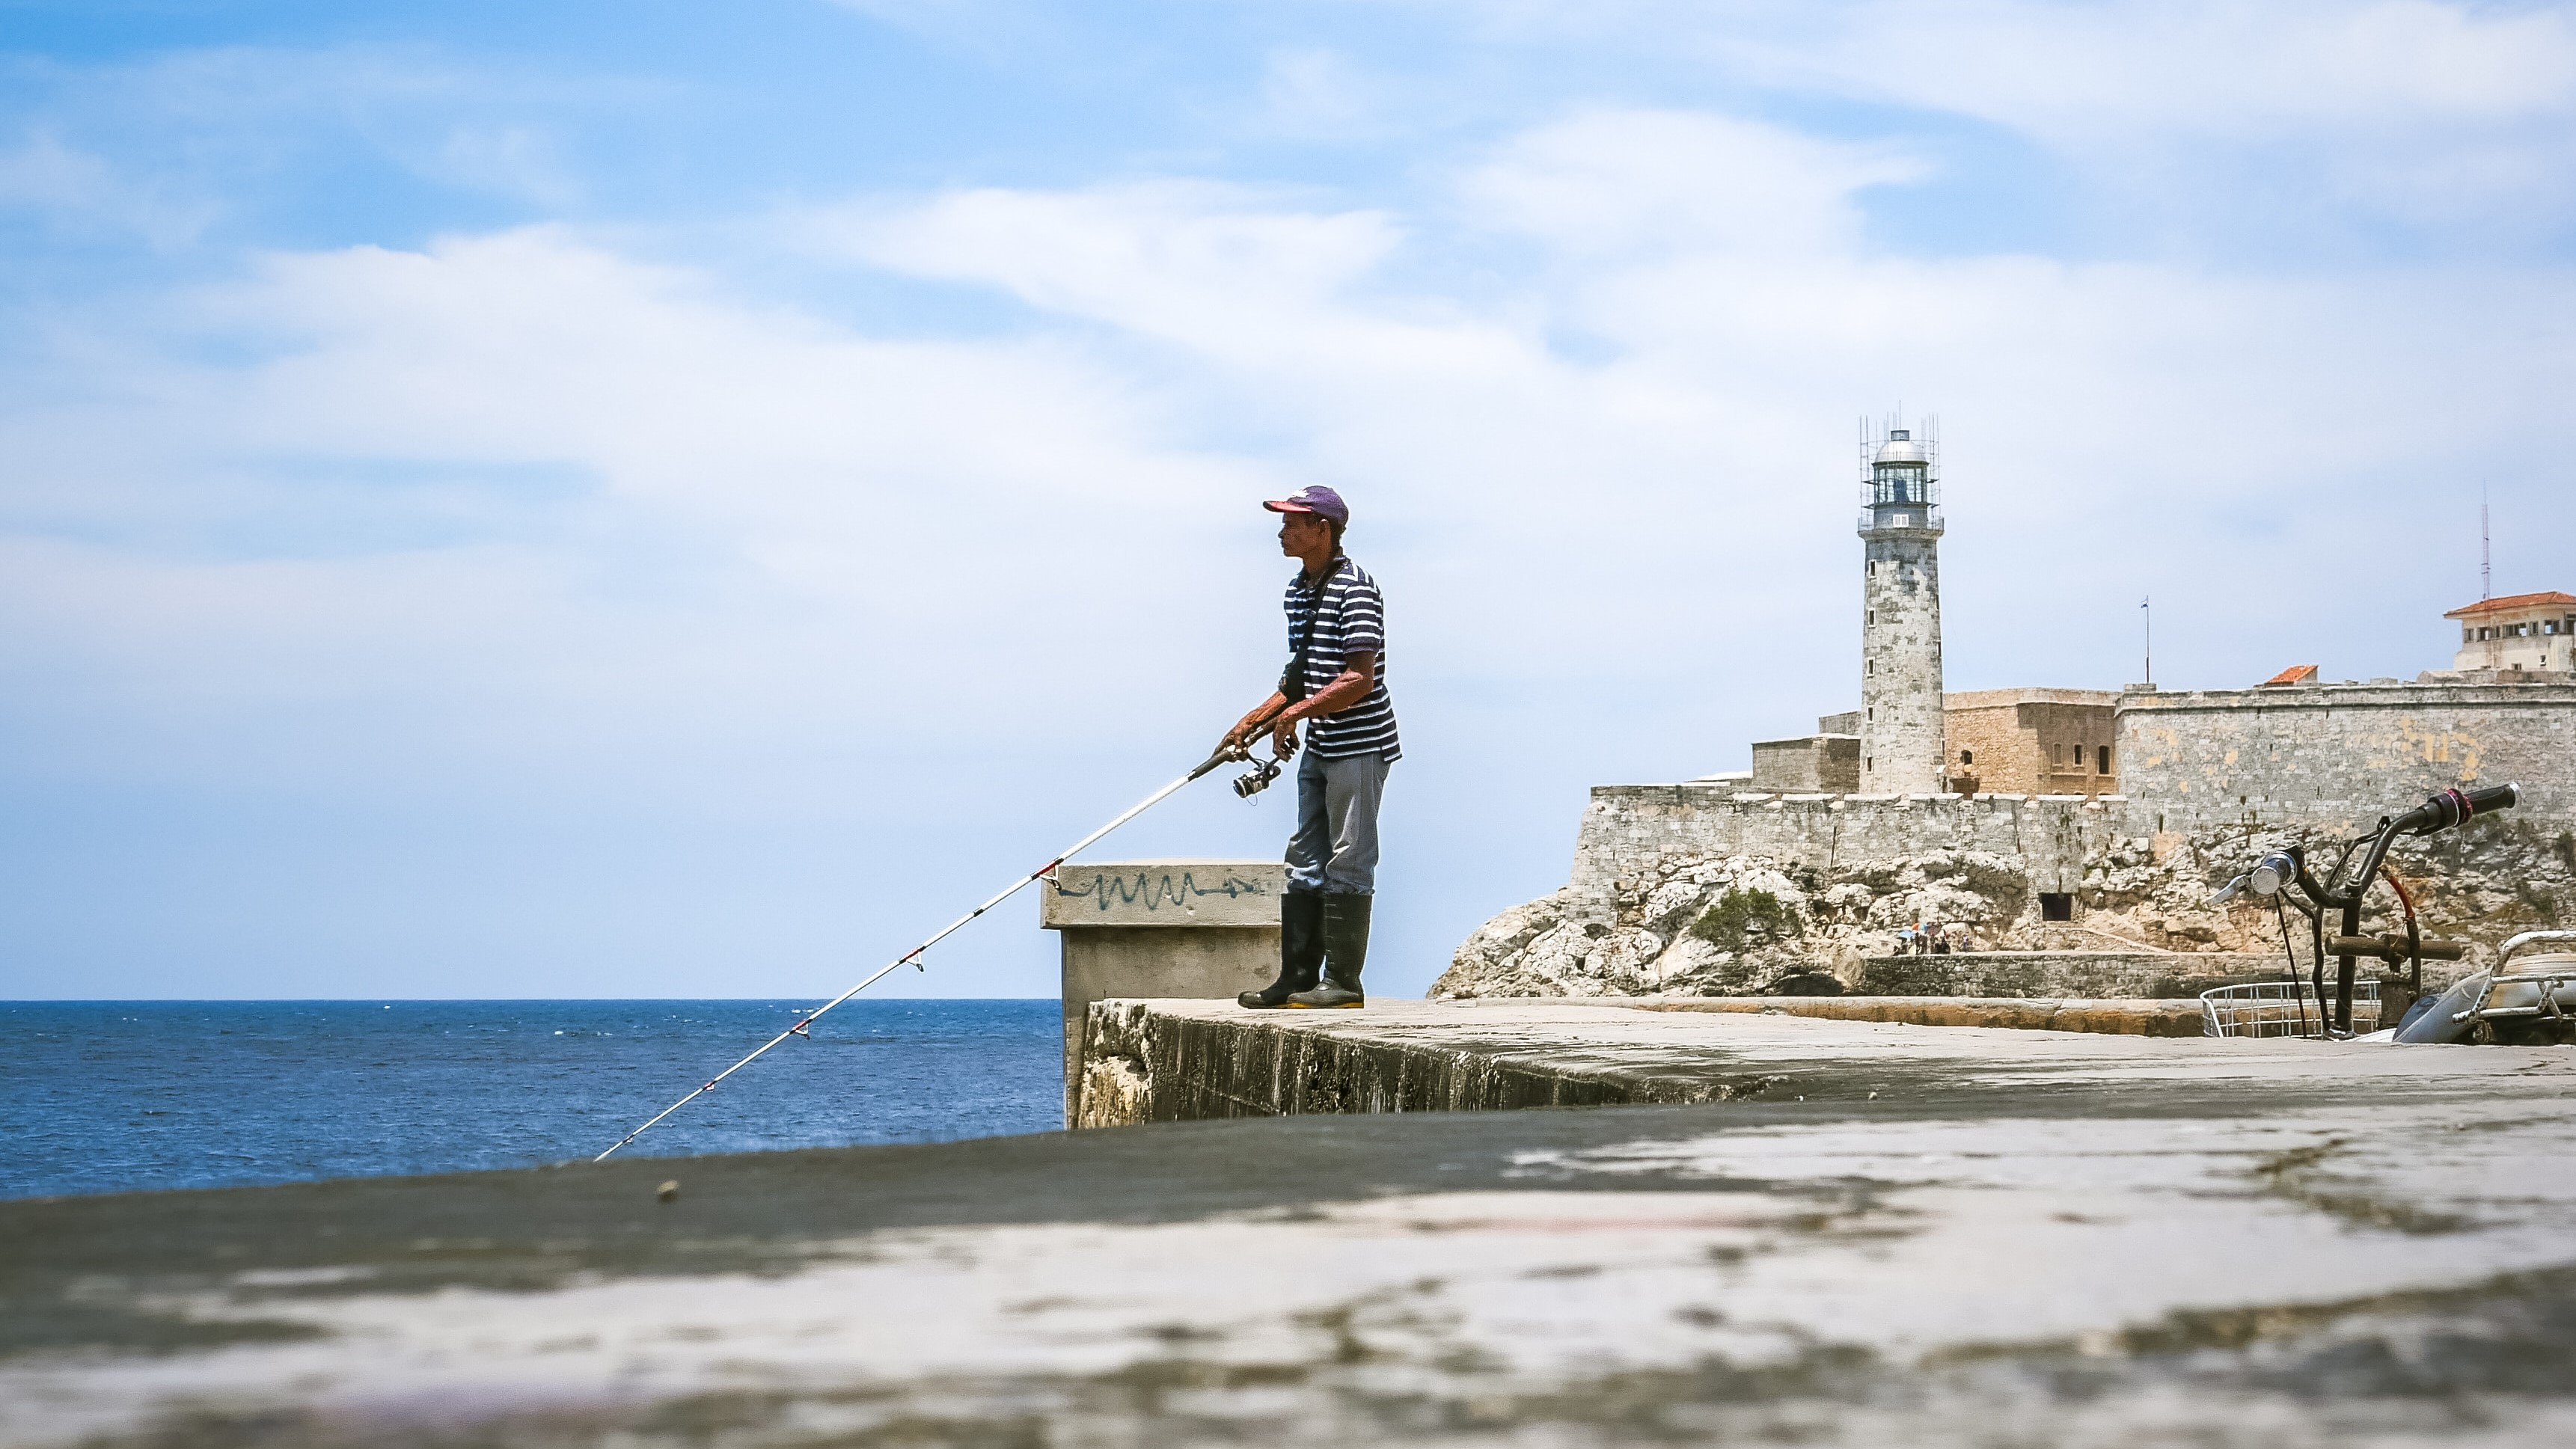 Cuban Fishing Curiosities and Other Adventures